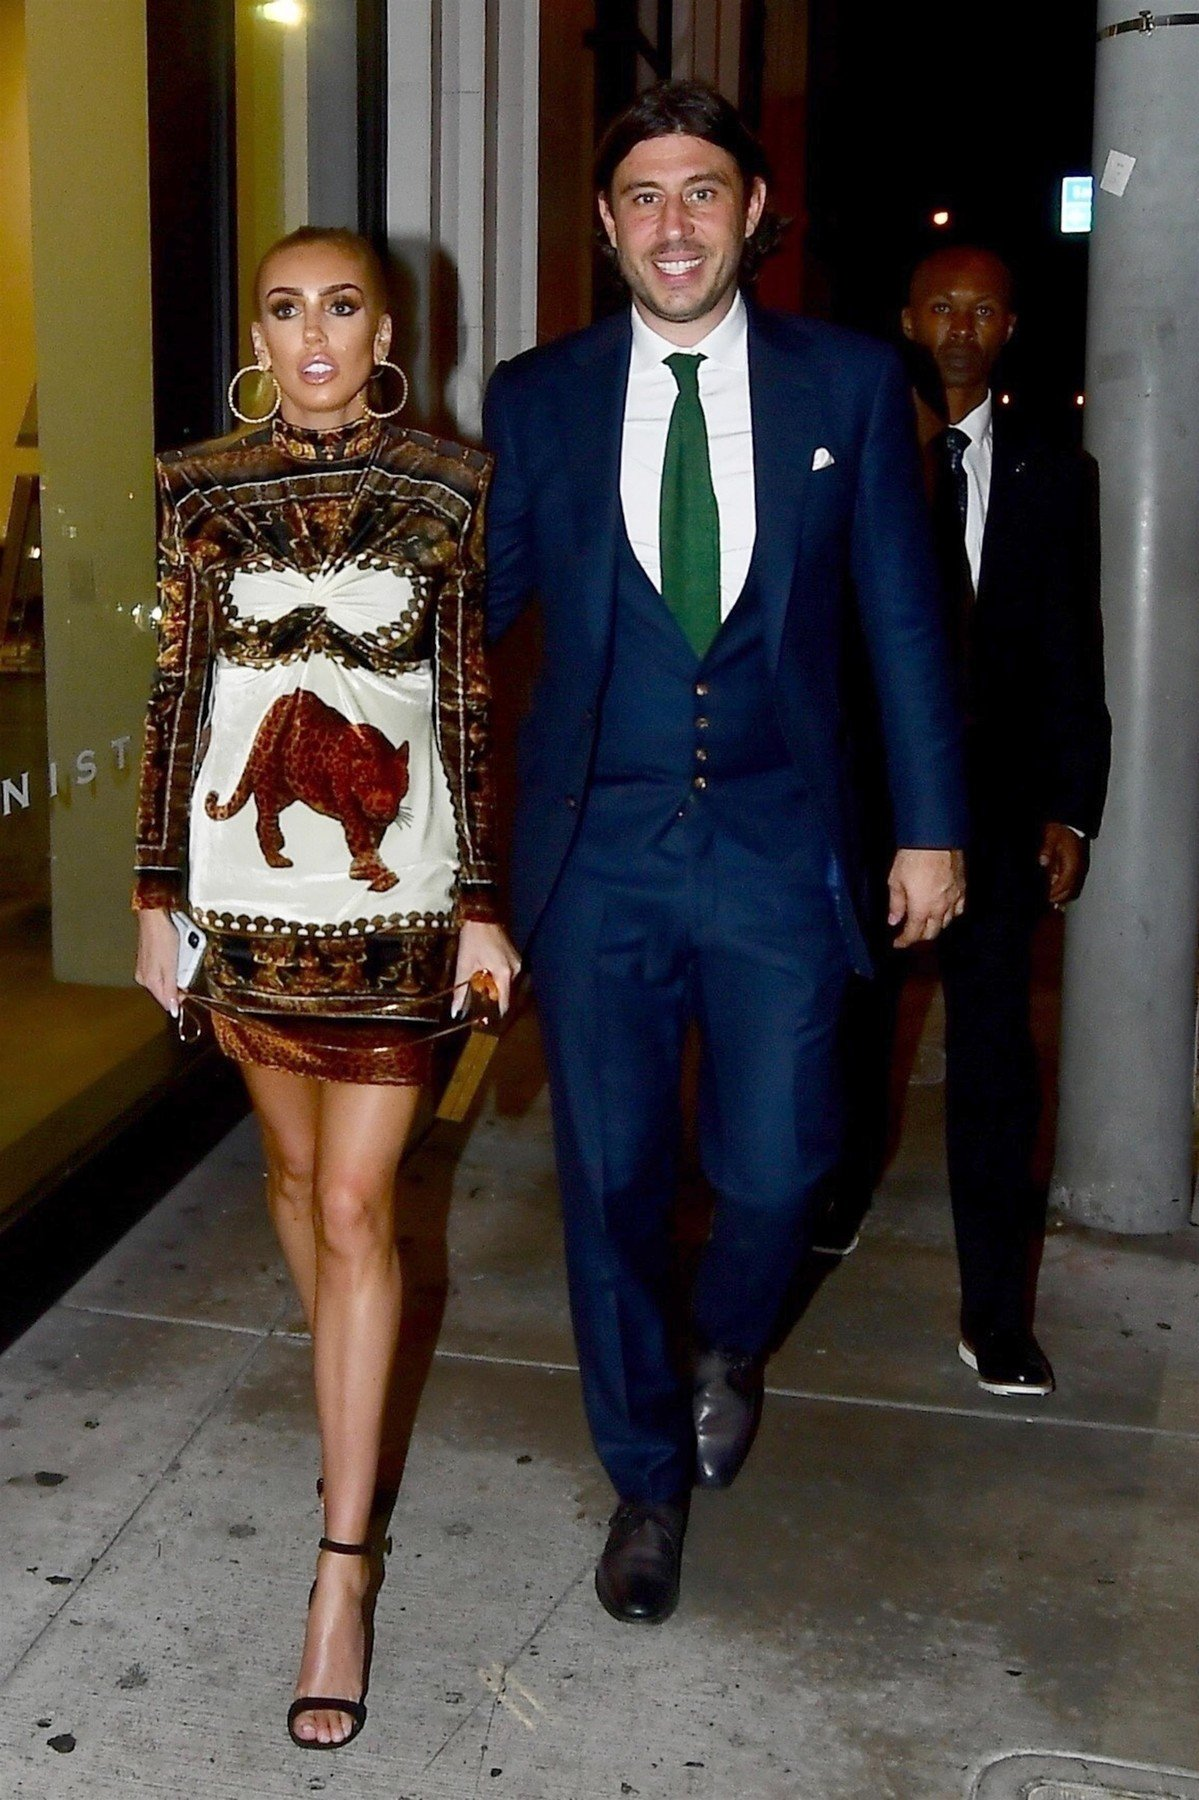 West Hollywood, CA  - Petra Ecclestone and Sam Palmer arrive together at LA hot spot Catch LA for a gallery opening.  Pictured: Petra Egglestone, Sam Palmer  BACKGRID USA 11 OCTOBER 2018, Image: 390866276, License: Rights-managed, Restrictions: , Model Release: no, Credit line: Profimedia, AKM-GSI